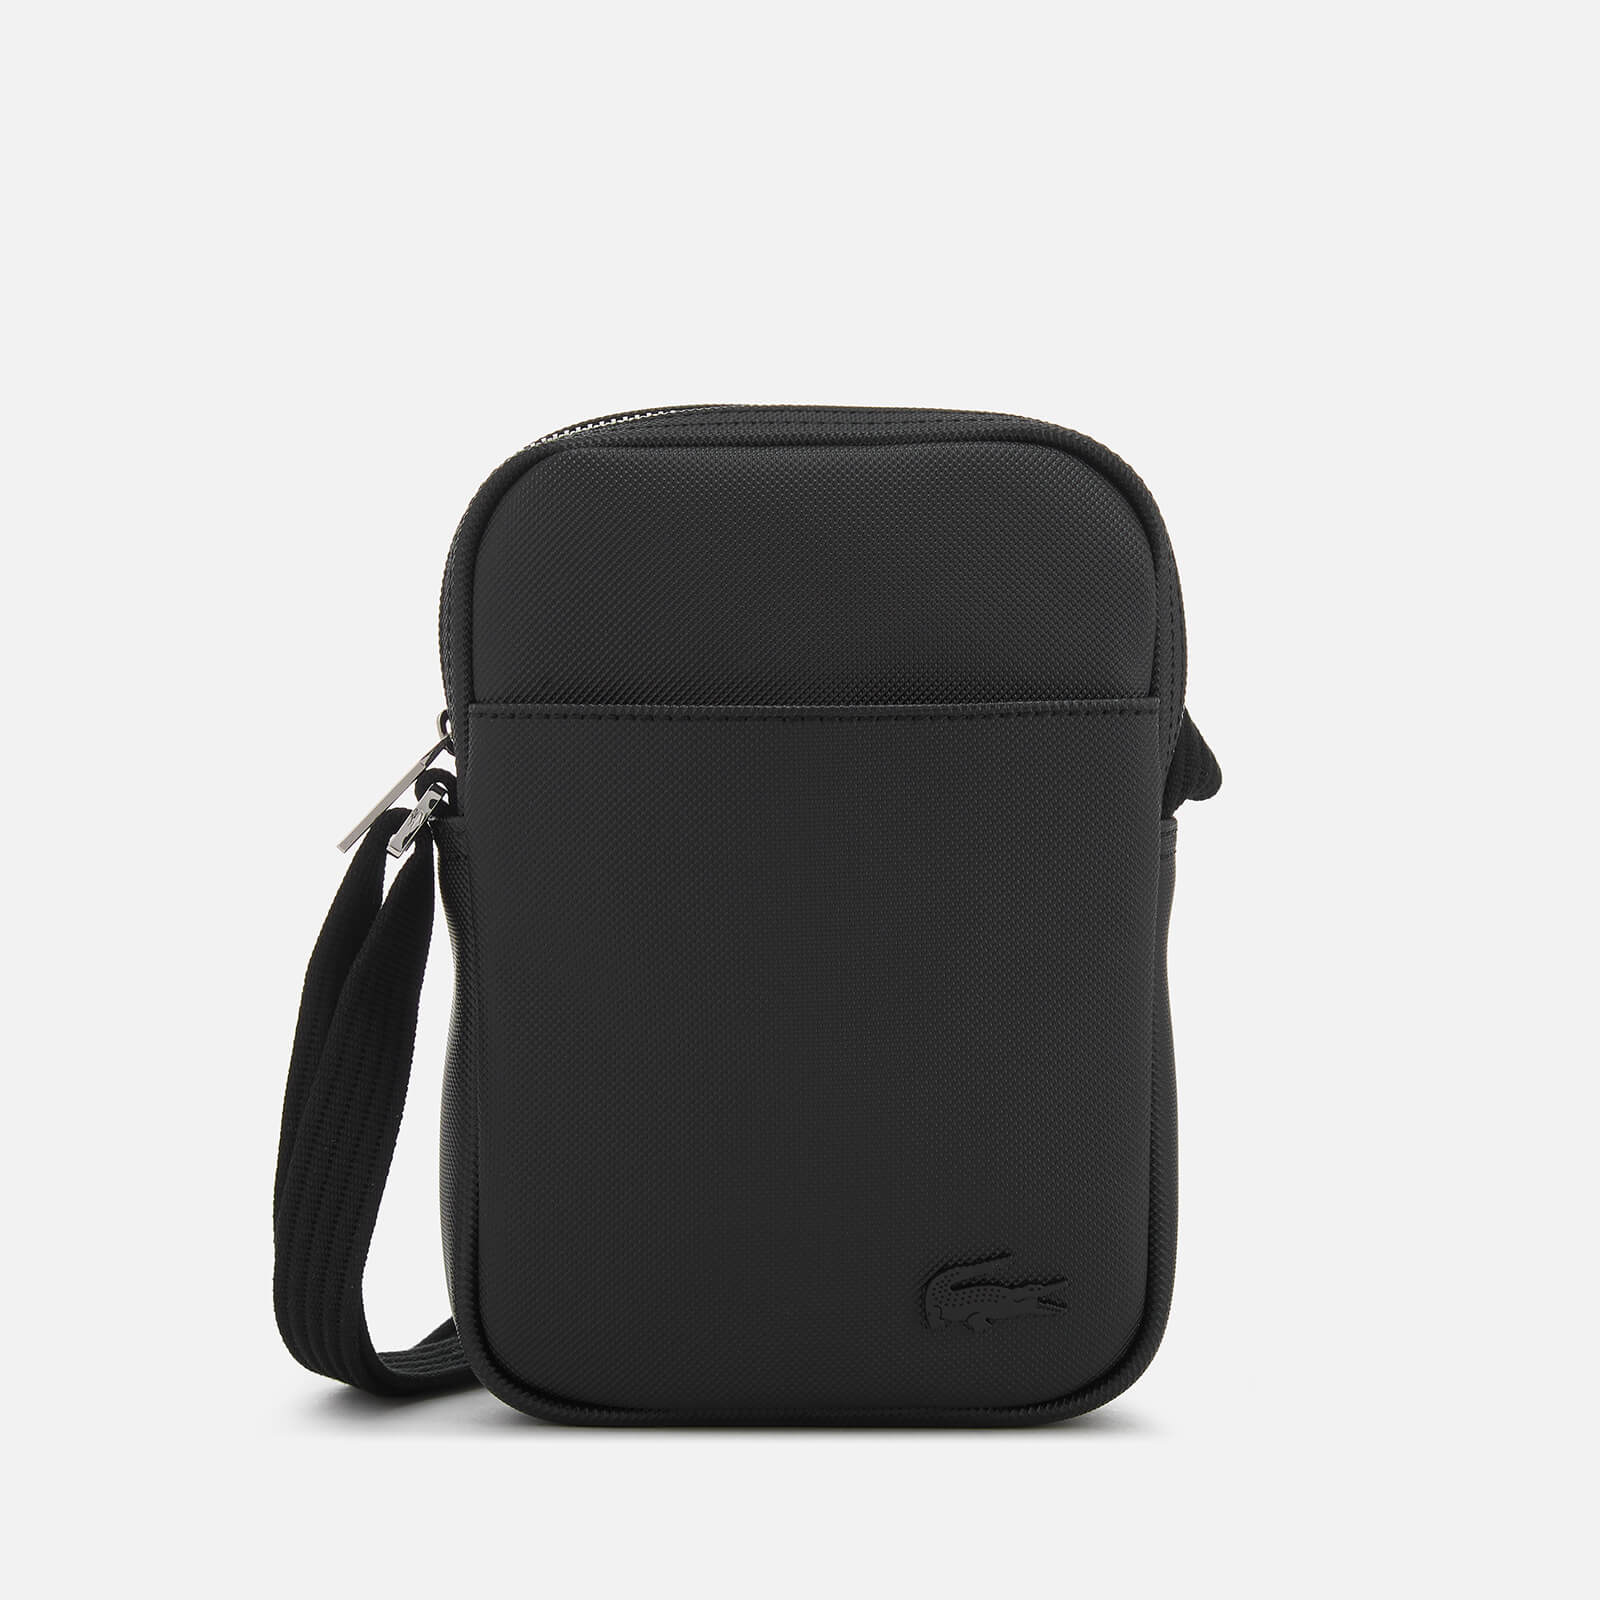 c06f5363bf4 Lacoste Men's Slim Vertical Camera Bag - Black - Free UK Delivery over £50